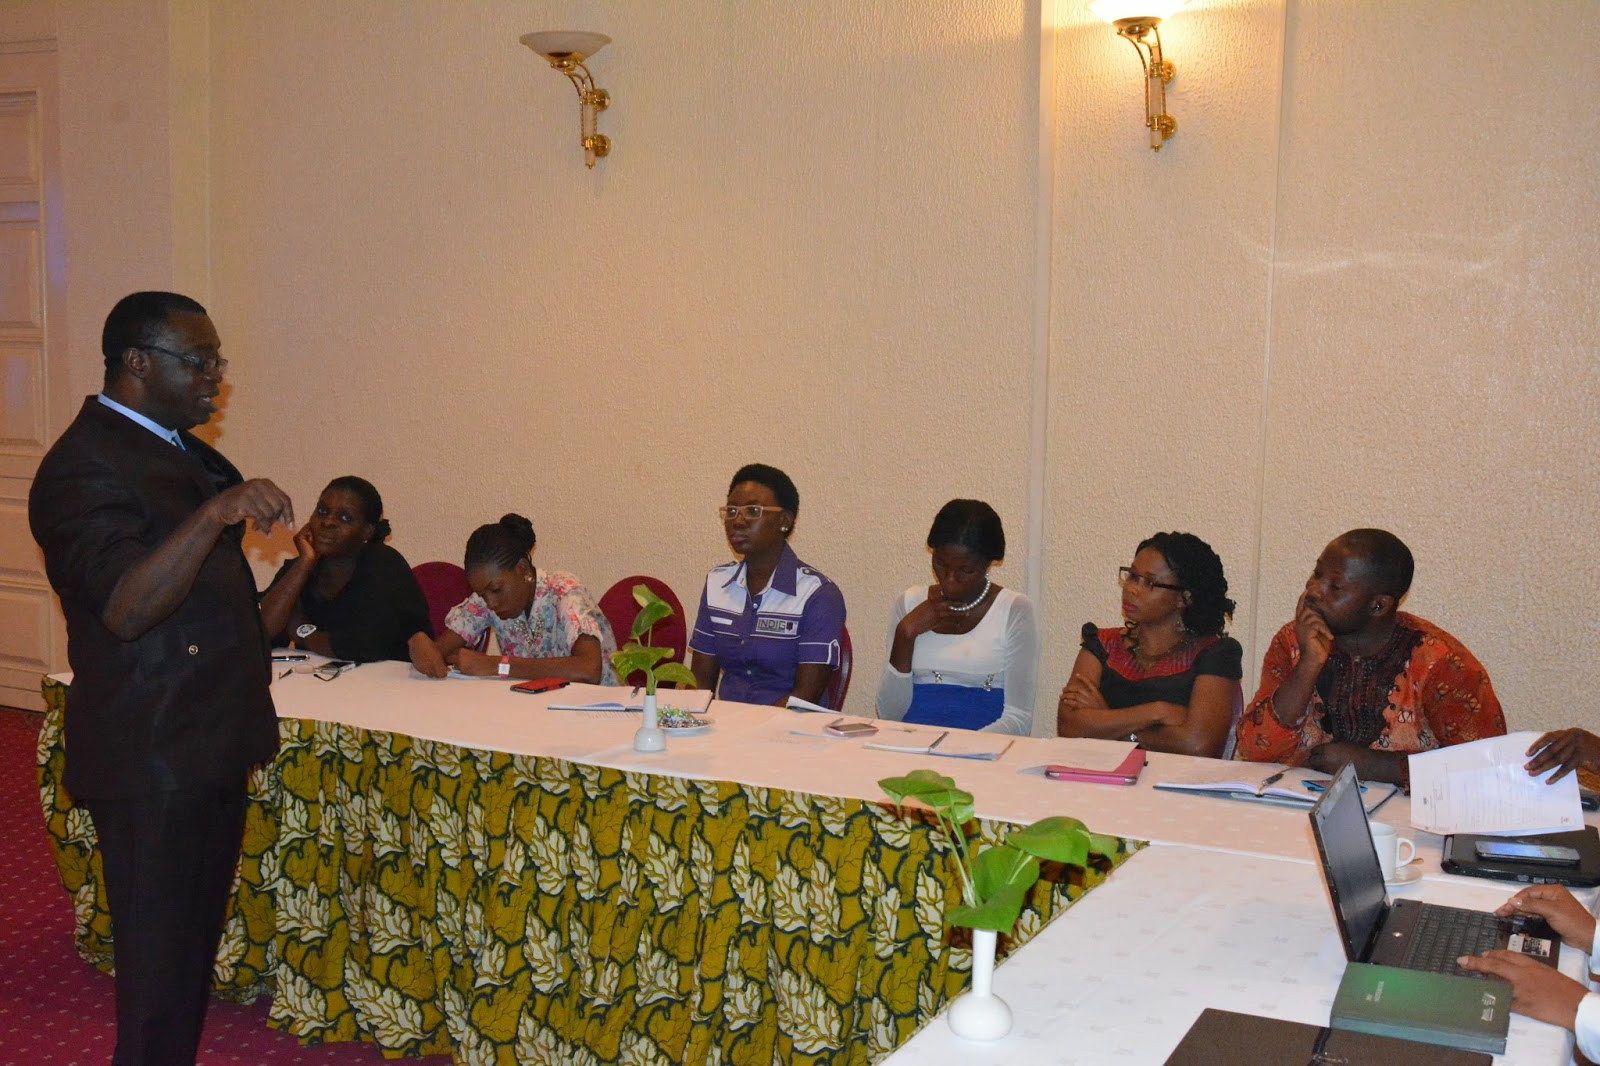 Prcan Masterclass 11 Was On Introduction To Event Management Notes On Pr Practice In Nigeria